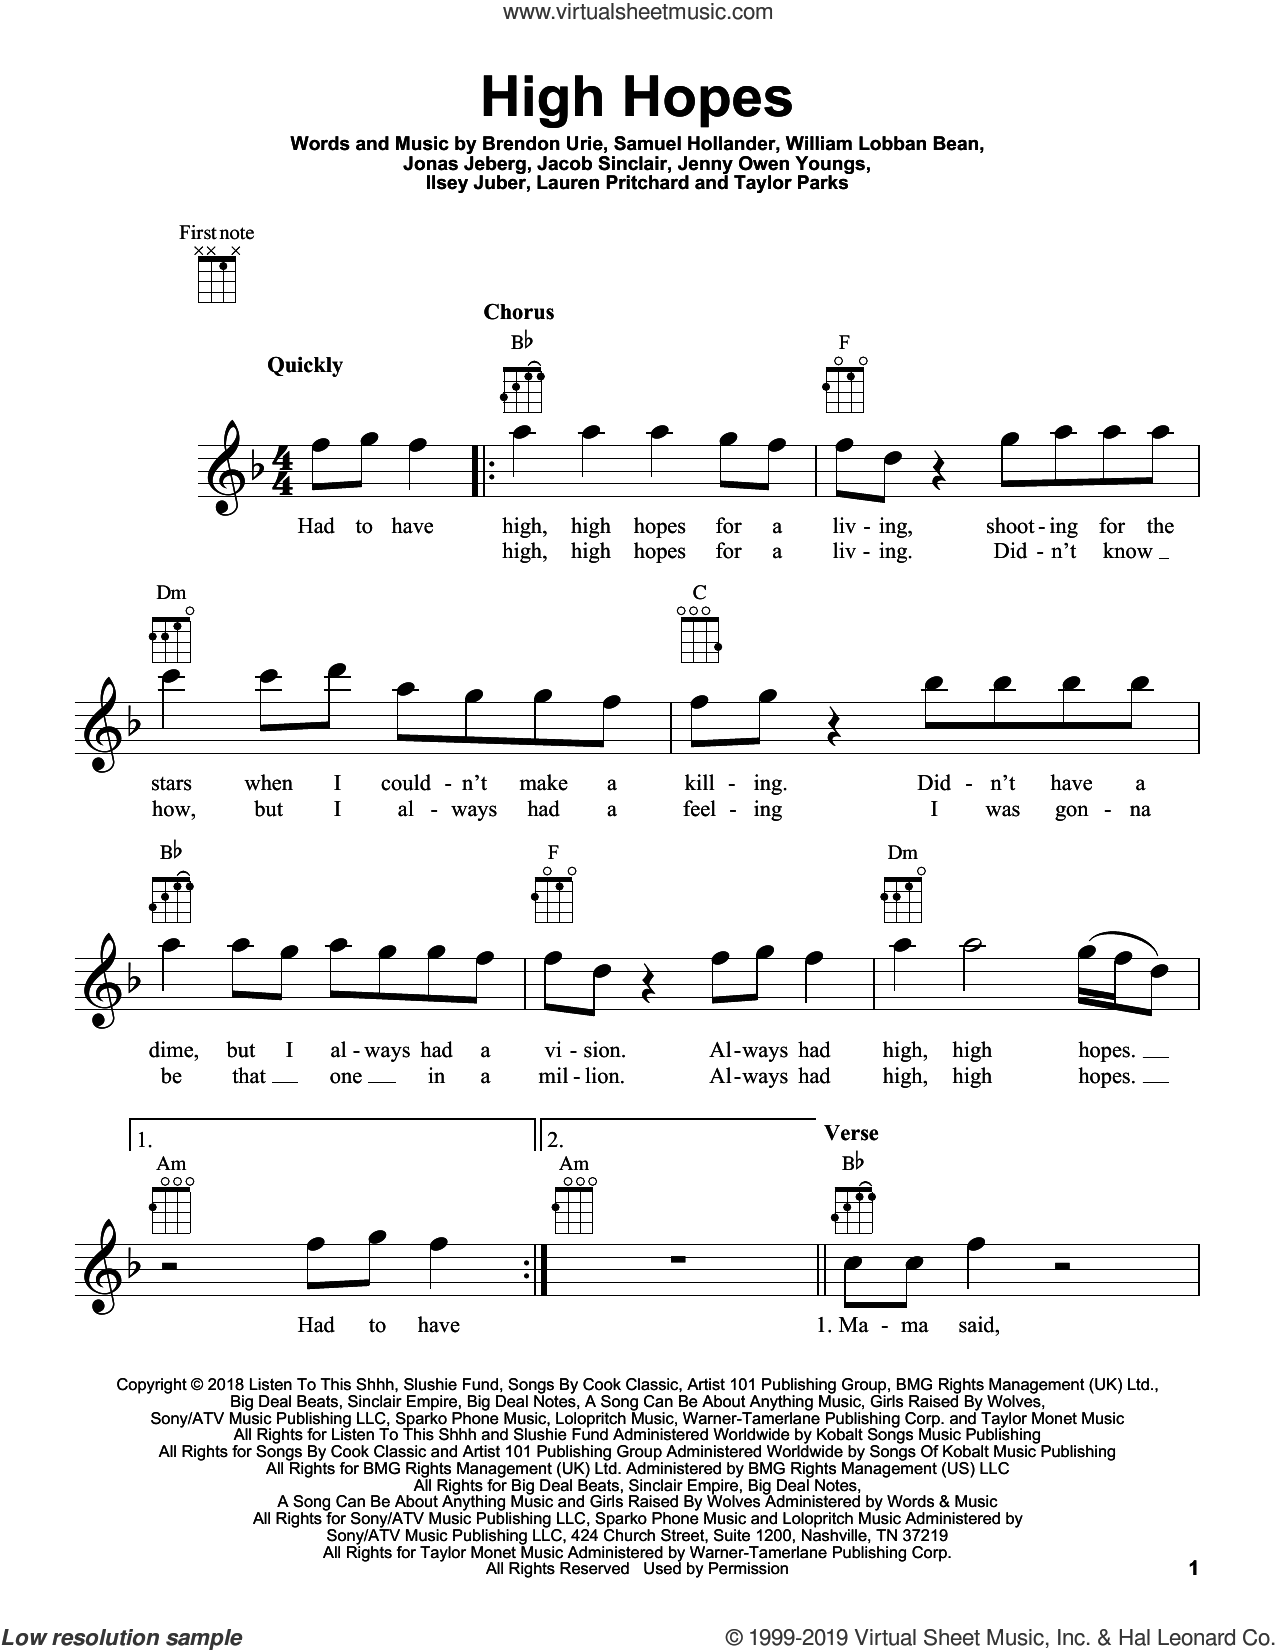 High Hopes sheet music for ukulele by Panic! At The Disco, Brendon Urie, Ilsey Juber, Jacob Sinclair, Jenny Owen Youngs, Jonas Jeberg, Lauren Pritchard, Sam Hollander, Taylor Parks and William Lobban Bean, intermediate skill level